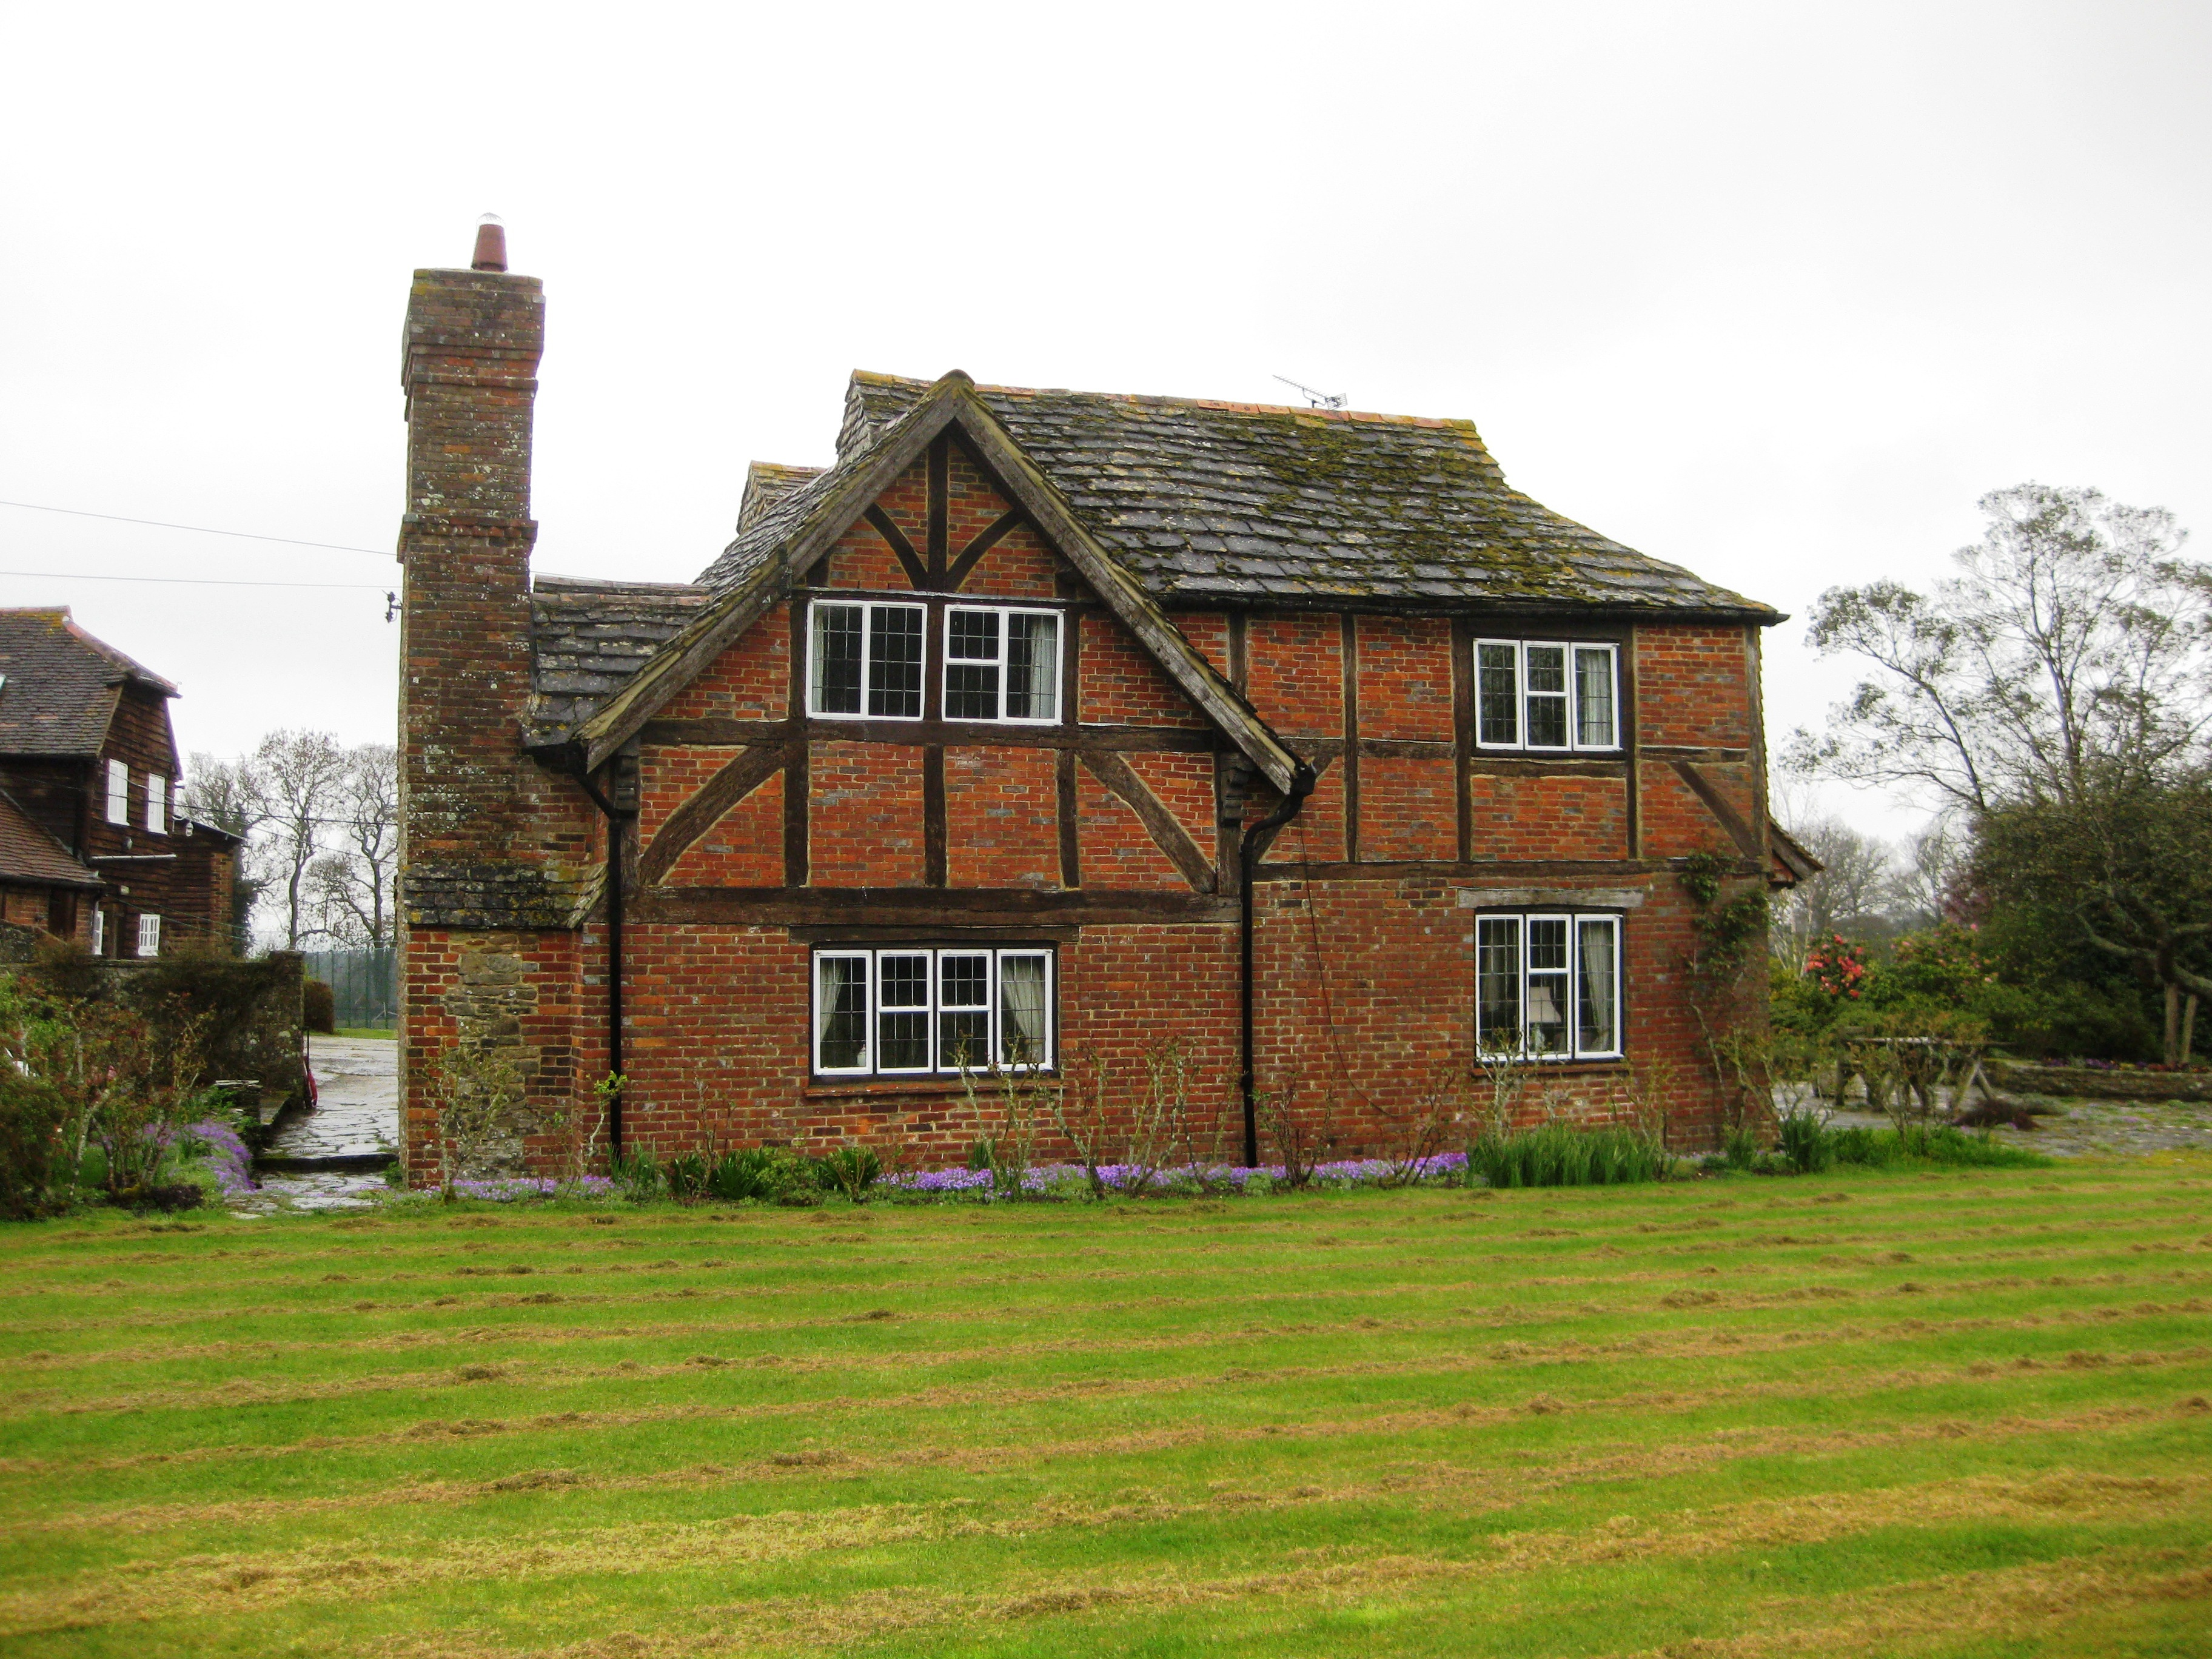 House With Chimney : Rudgwick today preservation society